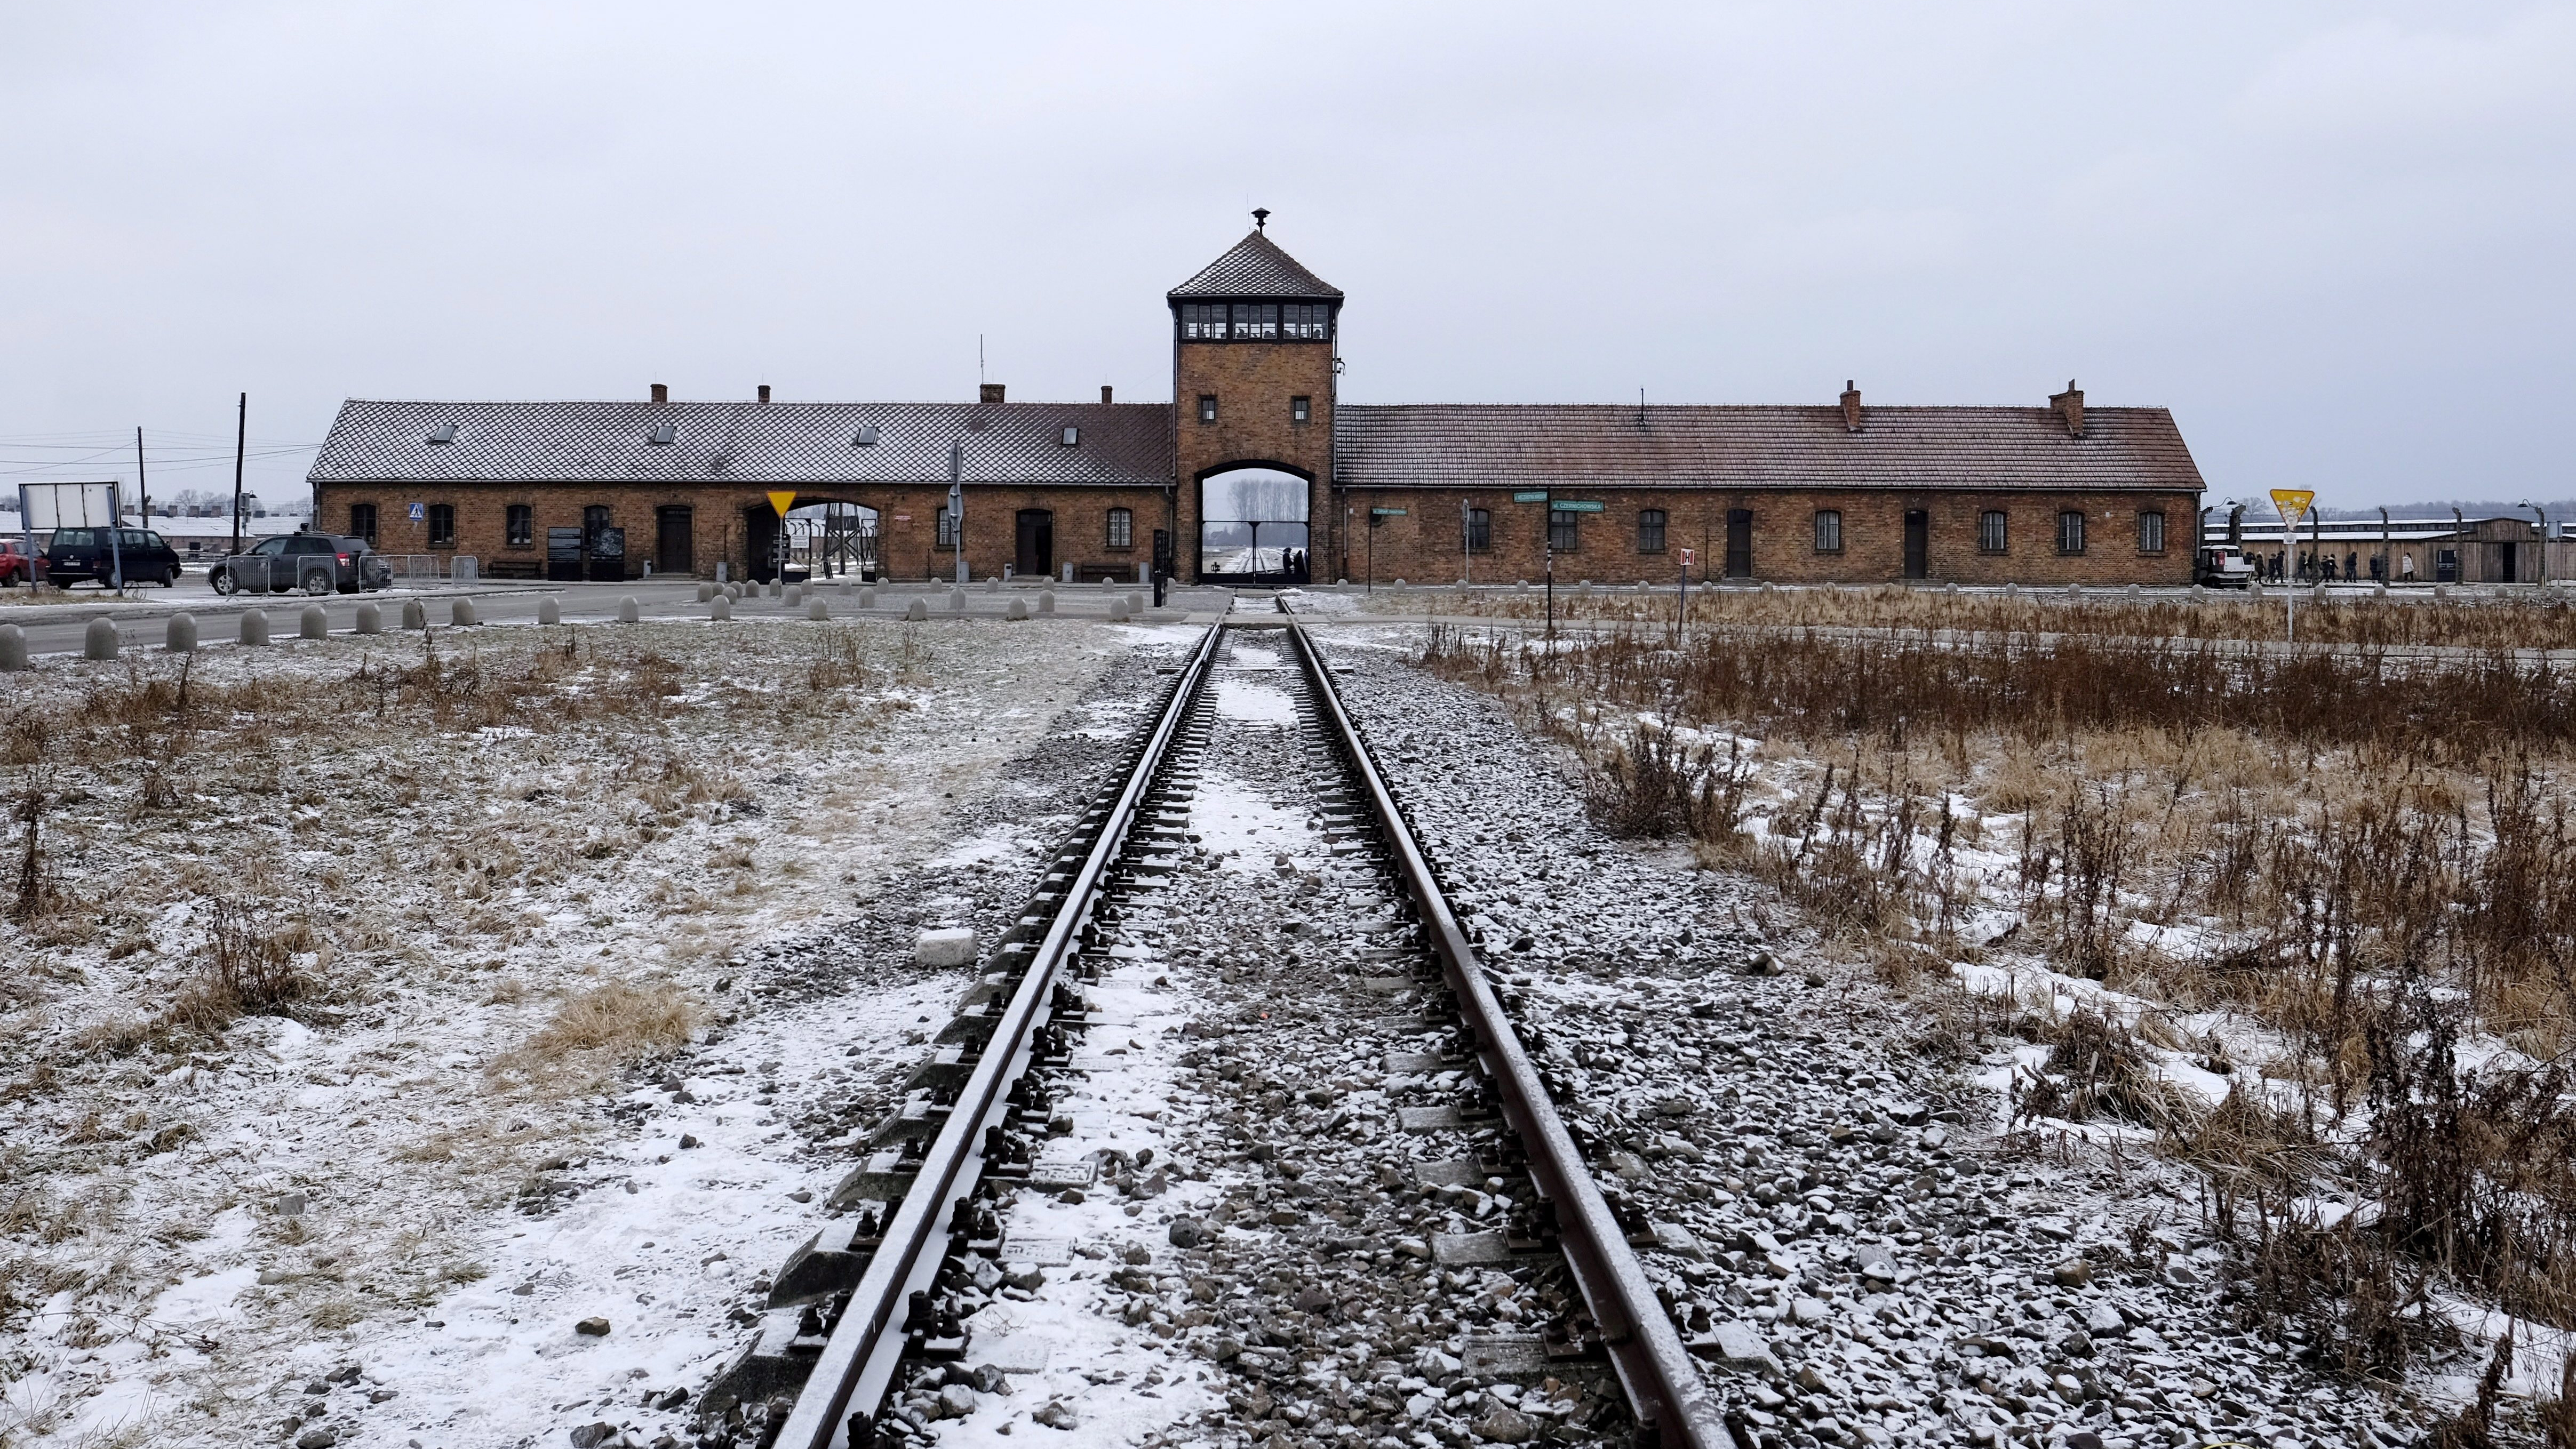 Eleven people charged over slaughtering lamb in bizarre gathering at Auschwitz Nazi death camp